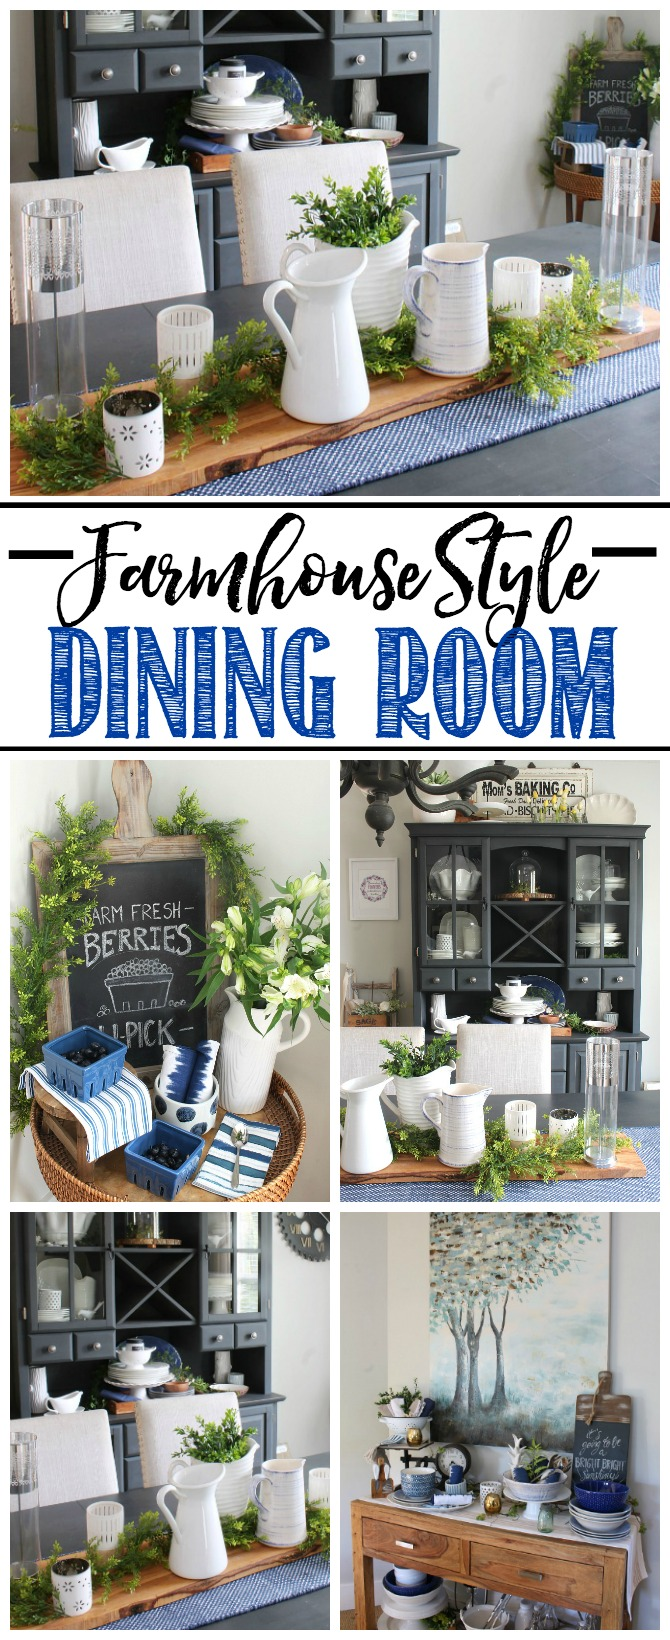 Farmhouse style dining room with blues, whites, and greens.  Beautiful summer decor!